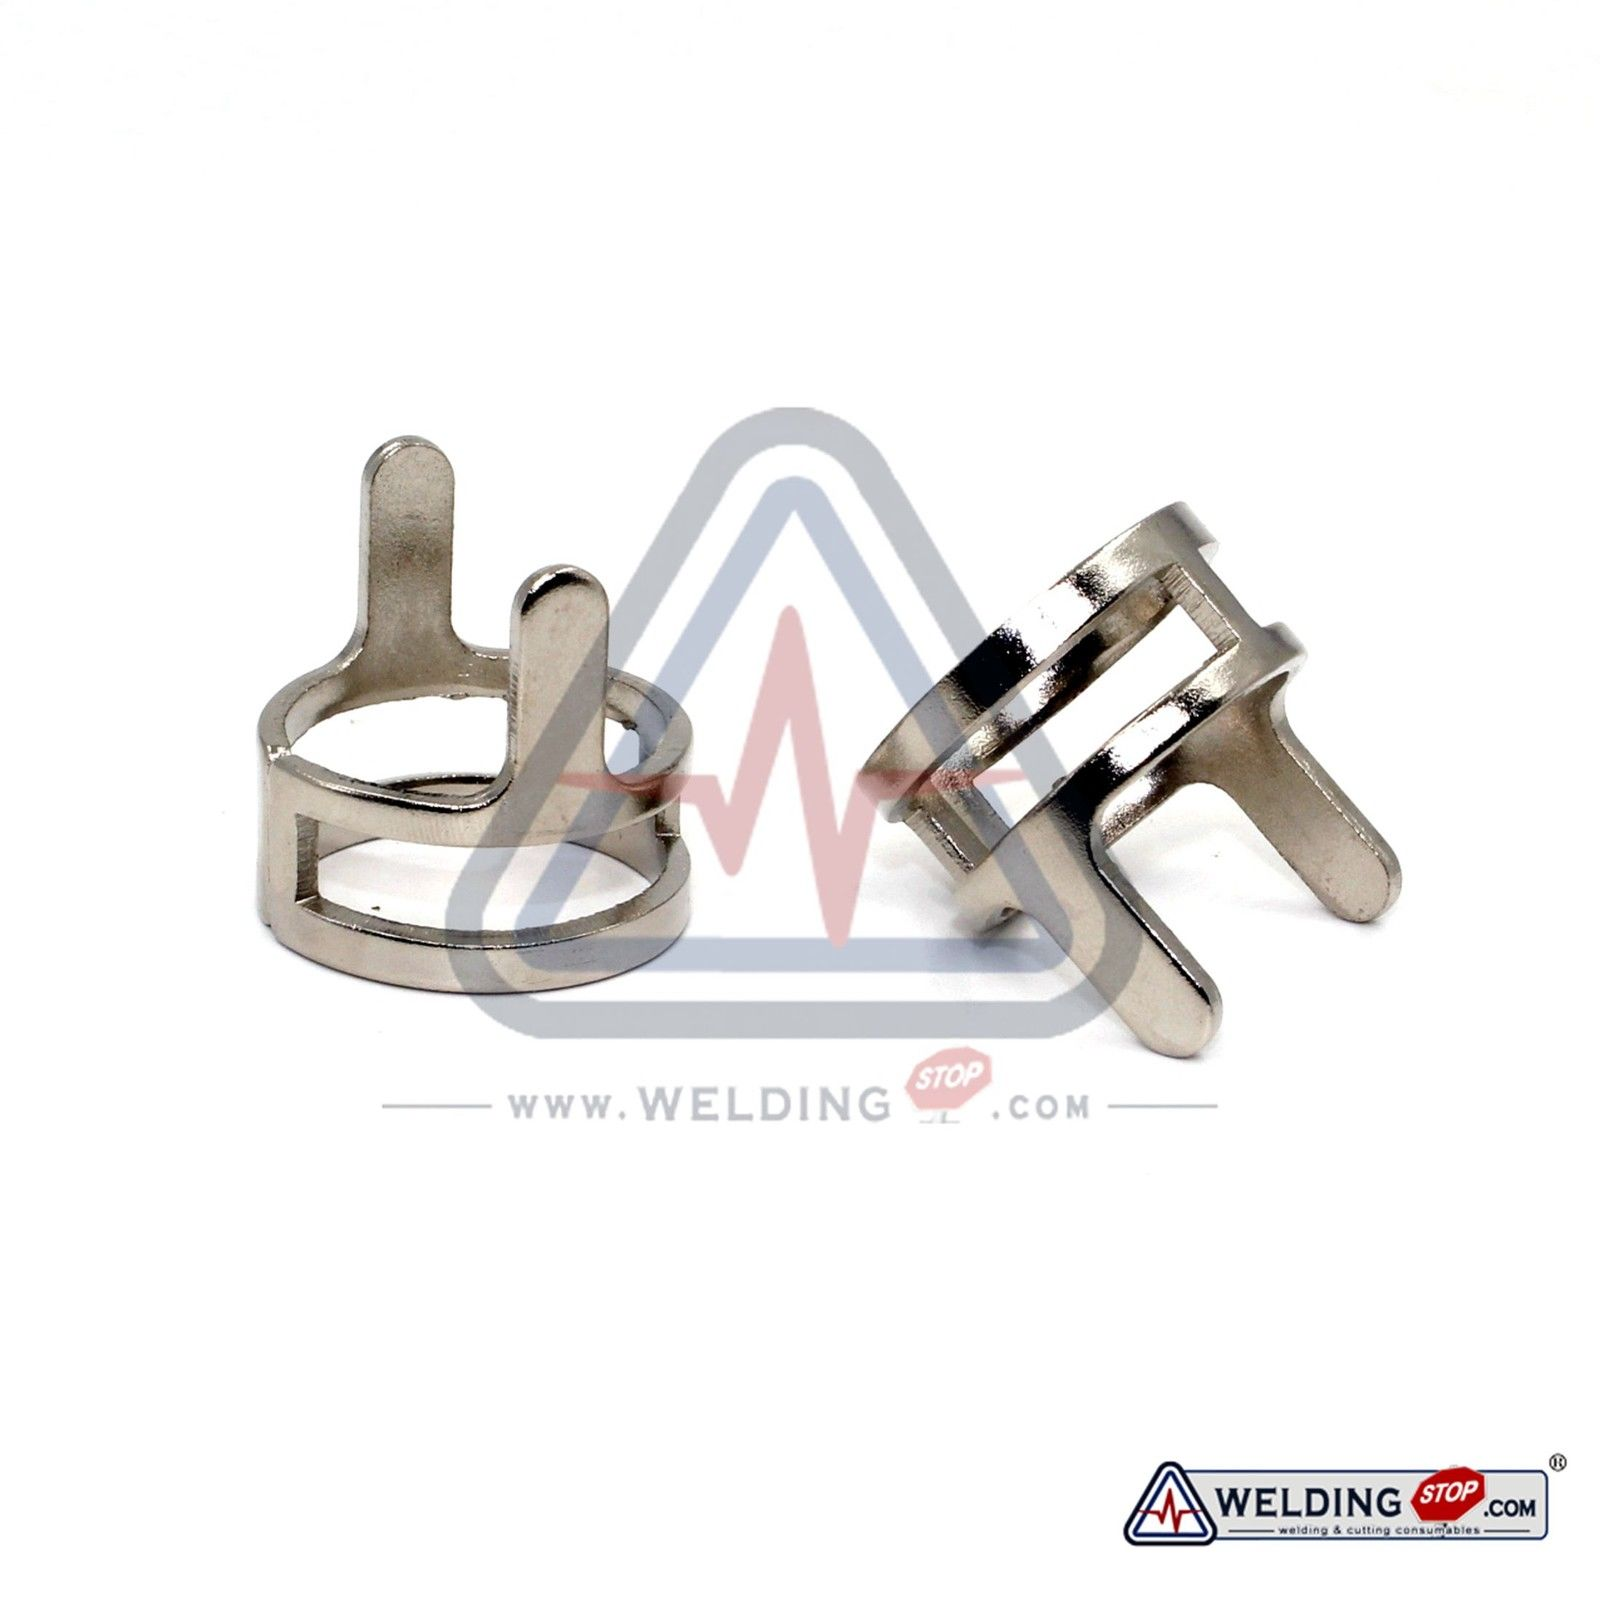 2pcs Solid Spacer Guide Stand Off, WSD-60 AG60 SG55 Plamsa Torch